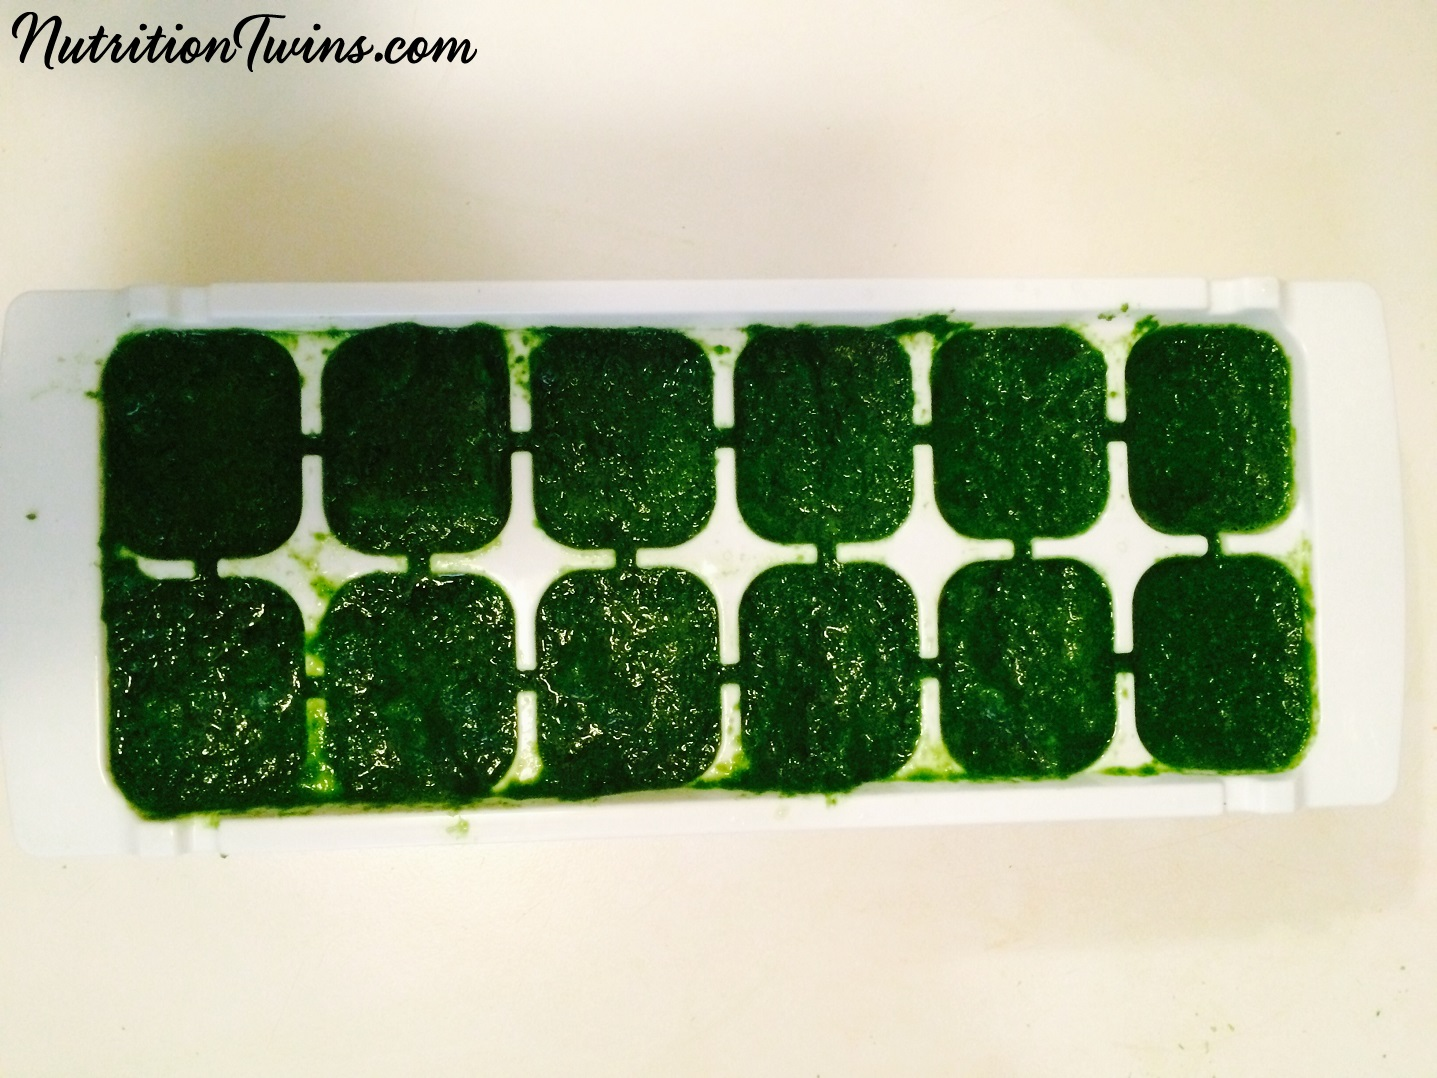 Kale_spinach_smoothie_cubes_sm_logo